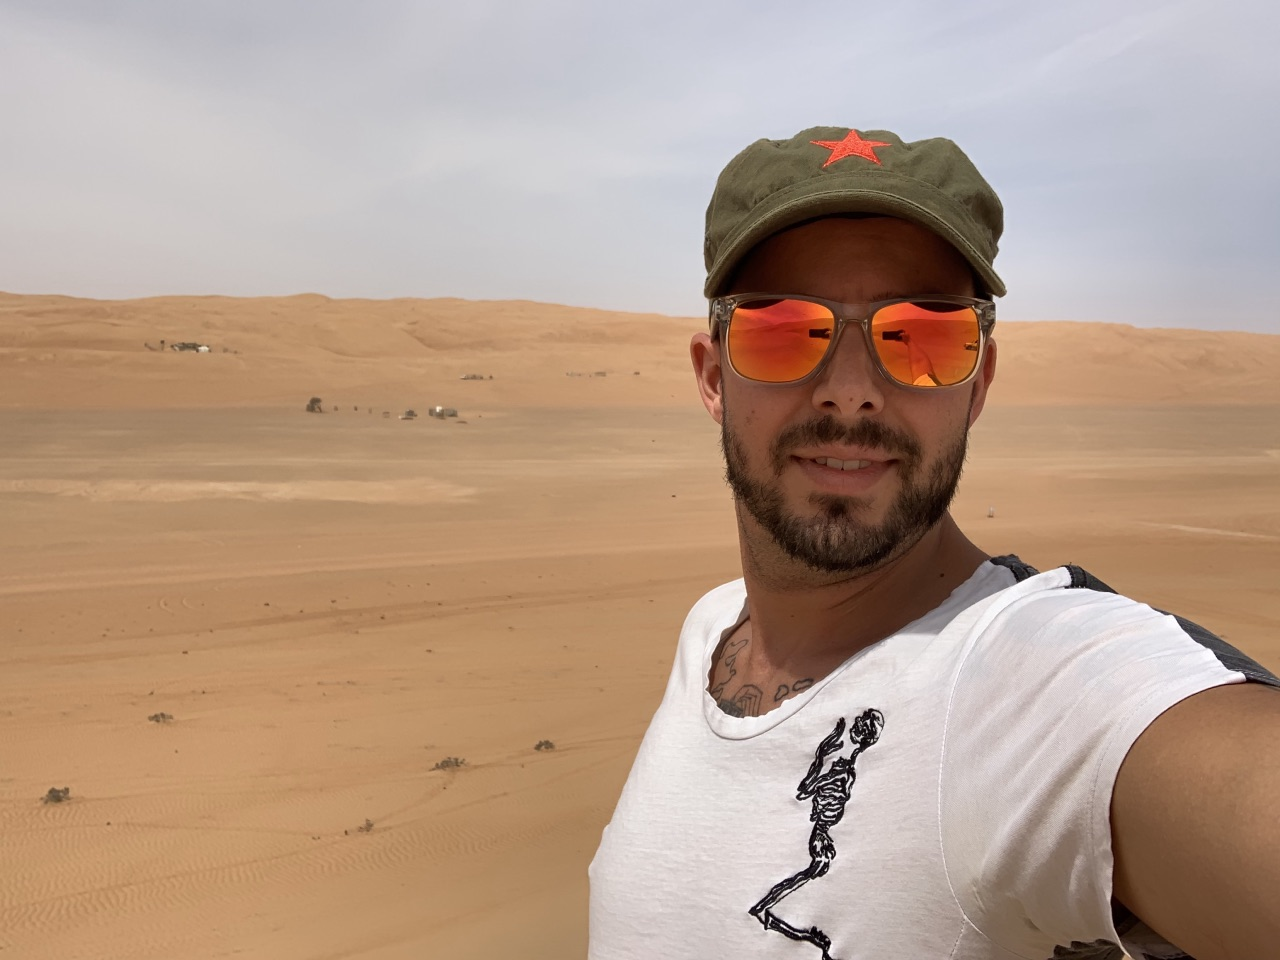 Christoph soaking up some sun in Oman